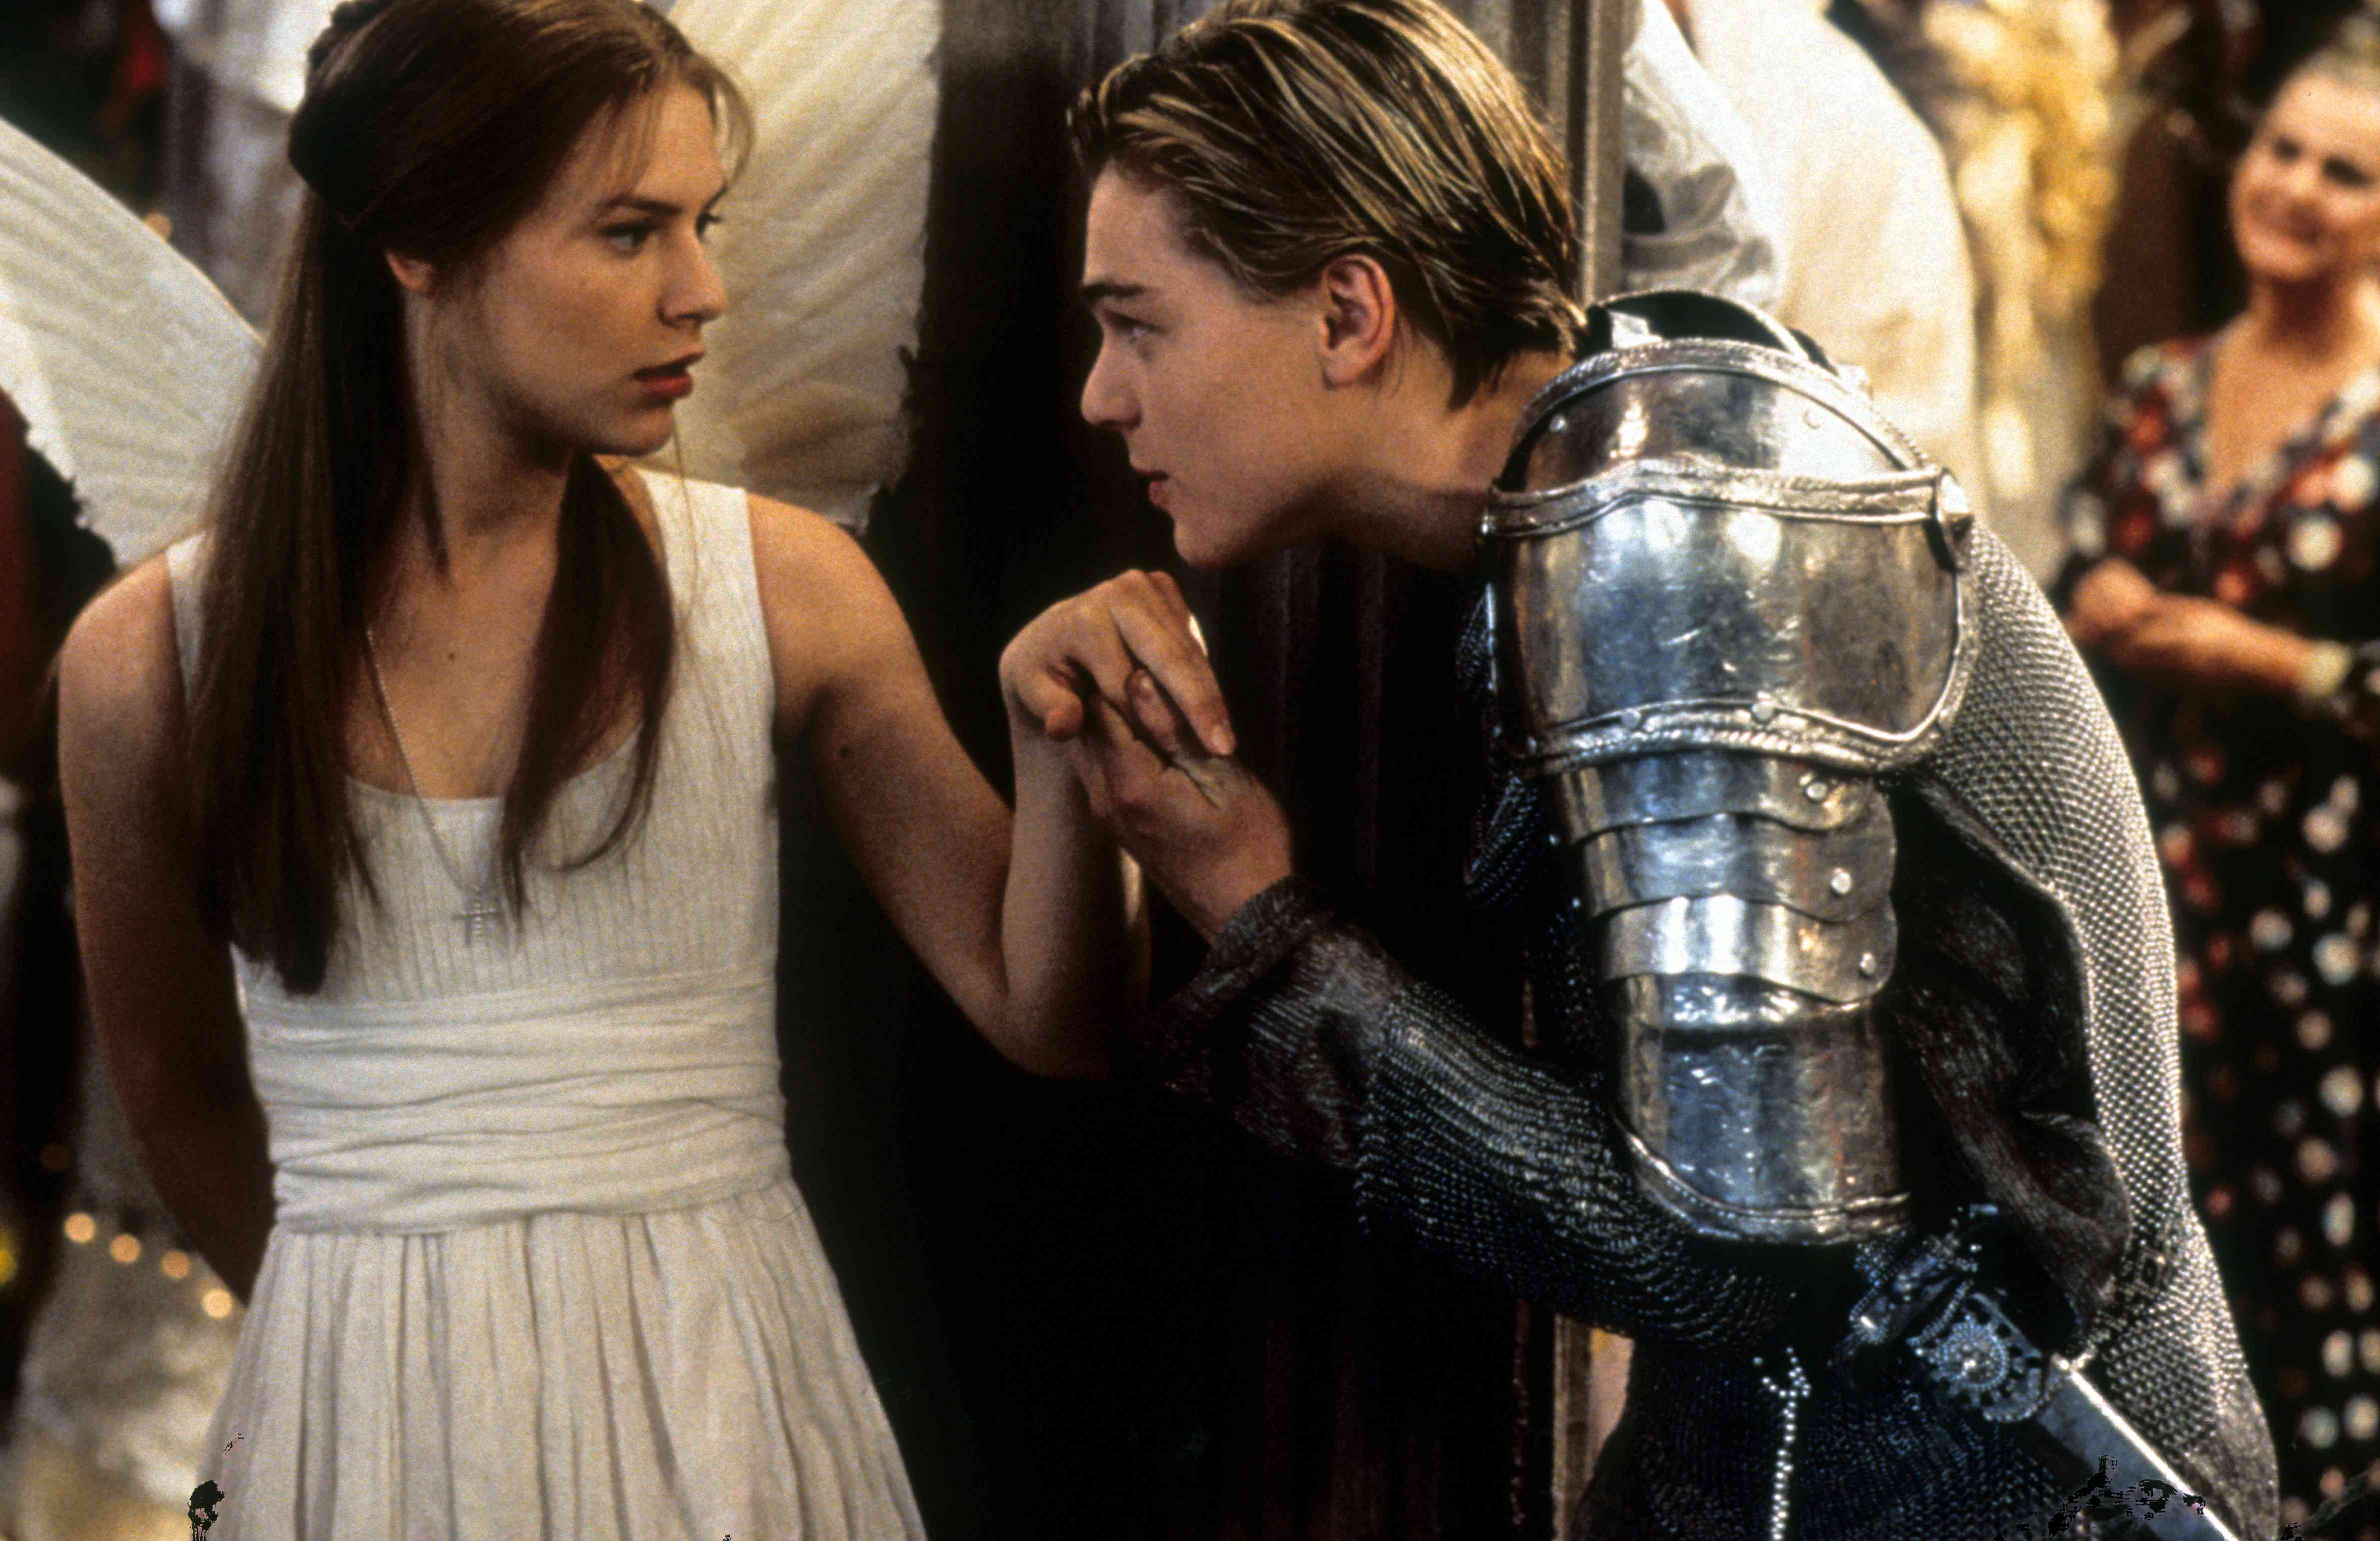 Claire Danes is surprised as Leonardo DiCaprio takes her hand to kiss in scene from the film 'Romeo + Juliet', 1996